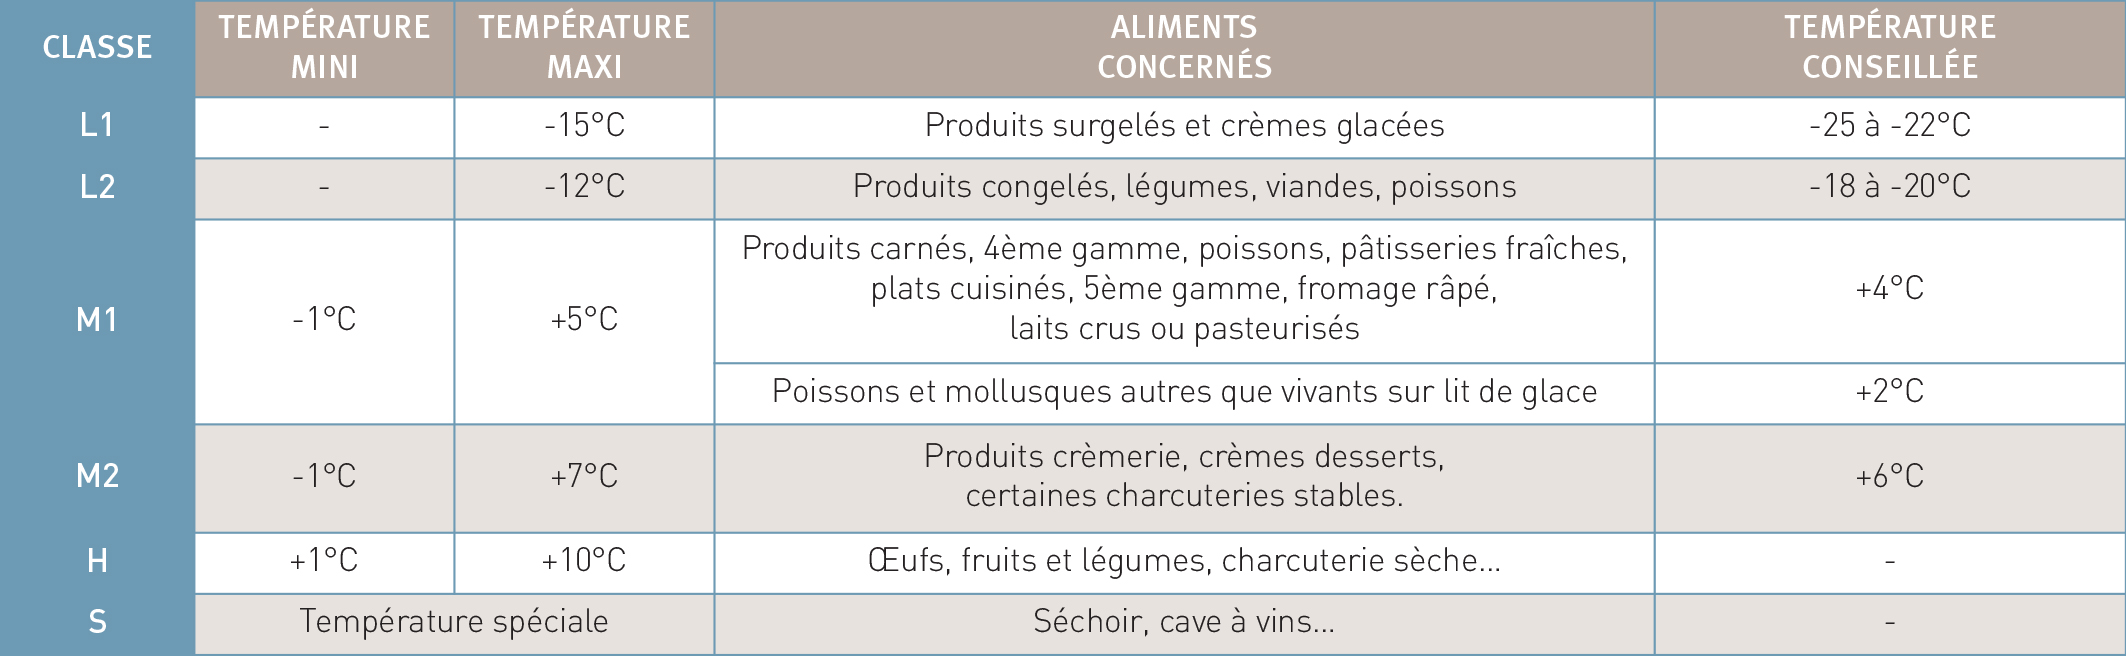 Classification des vitrines et conservation des aliments